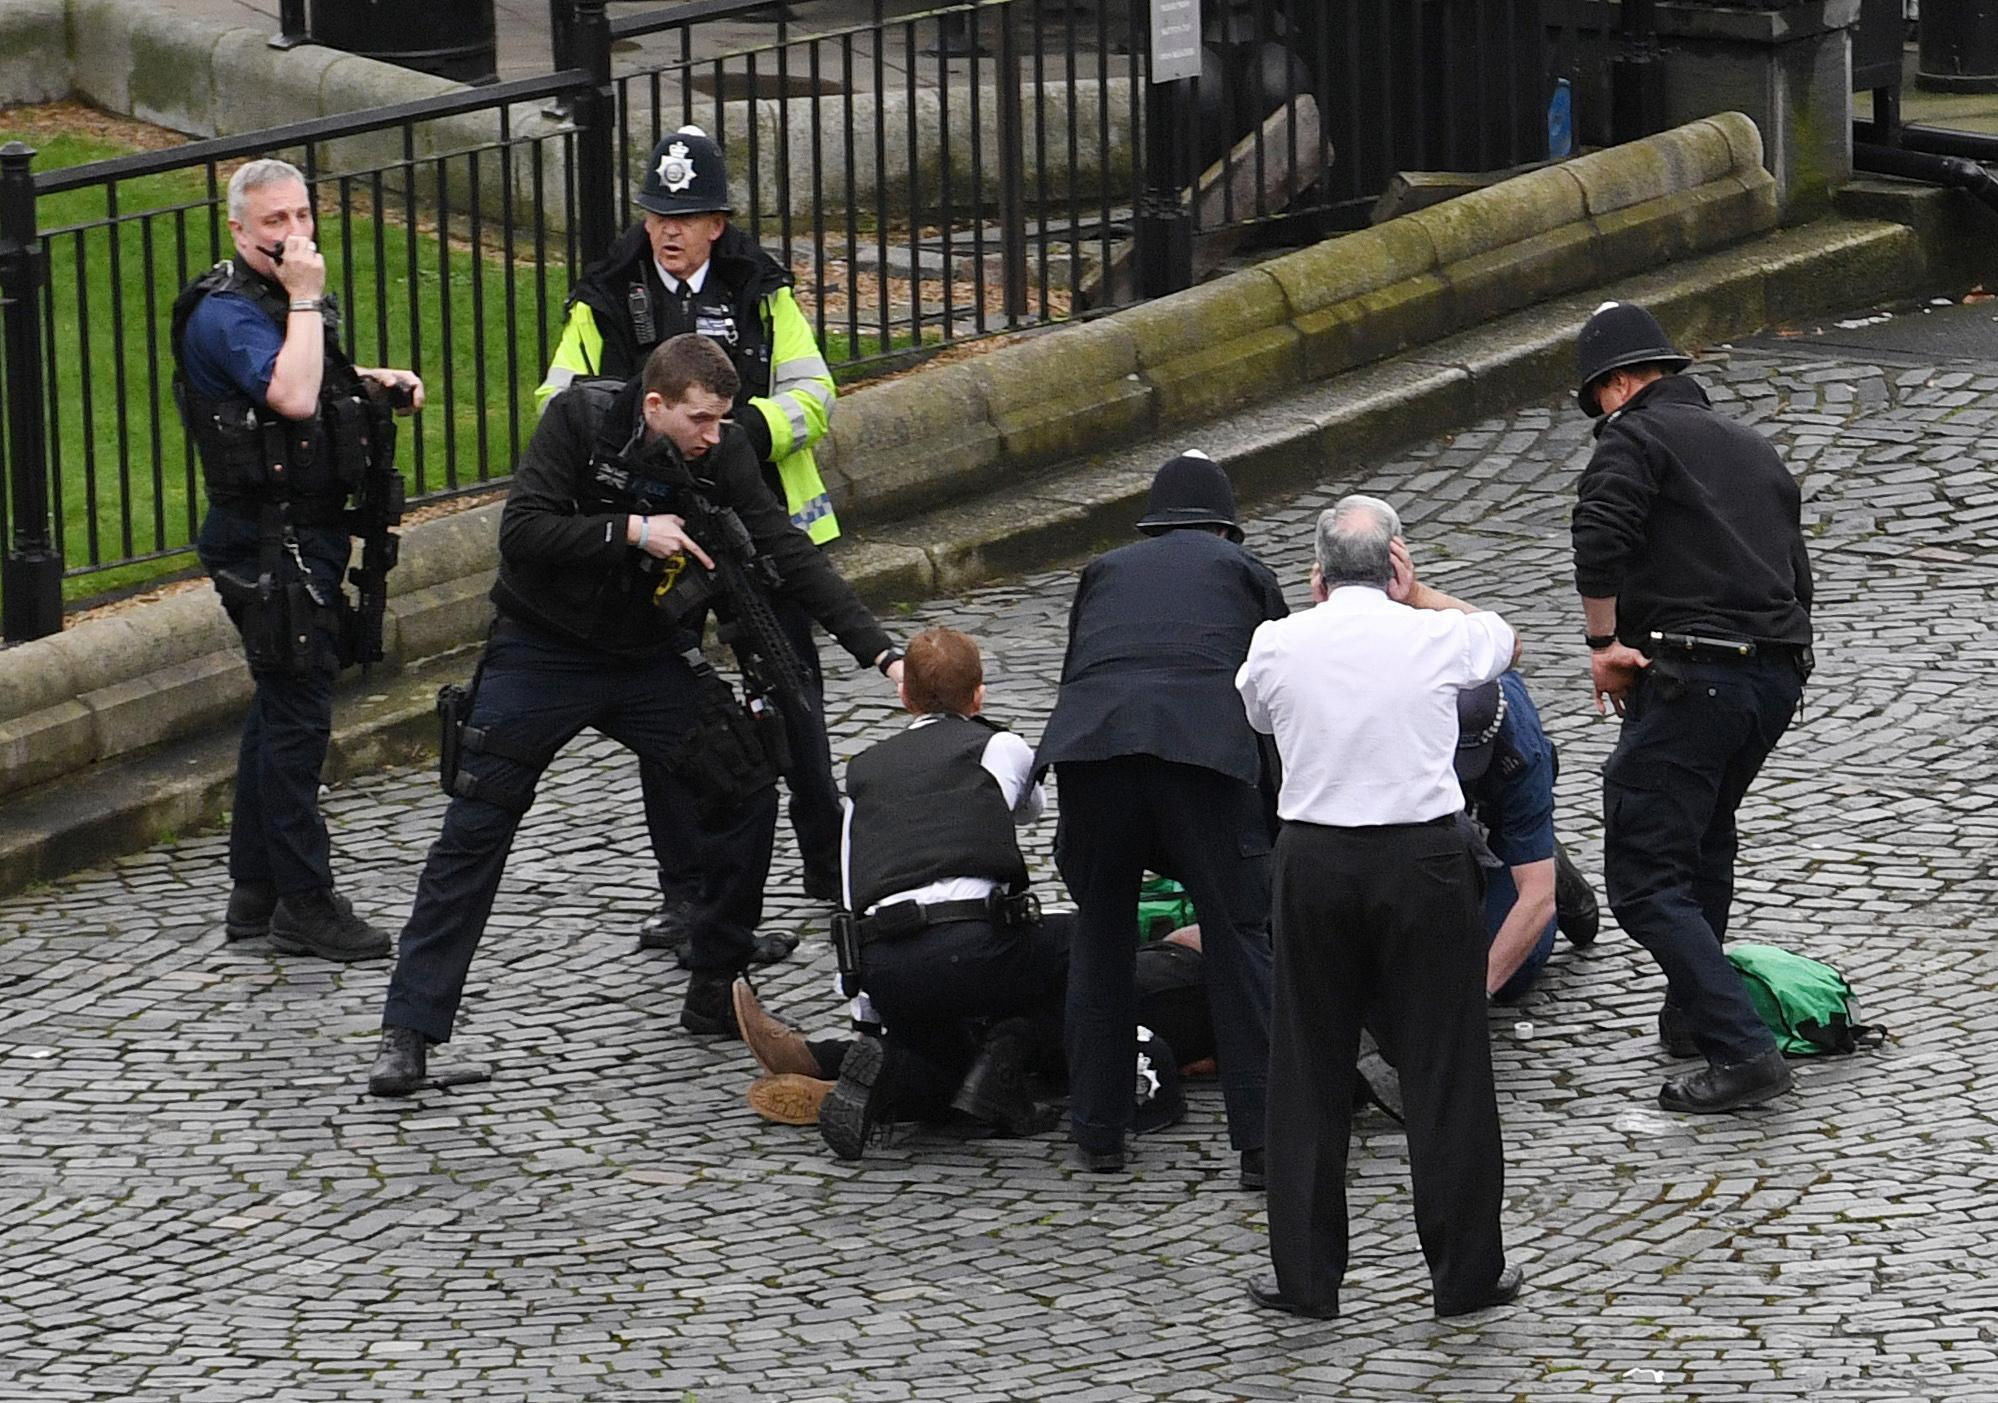 412 people have been arrested on terror related charges in the past year